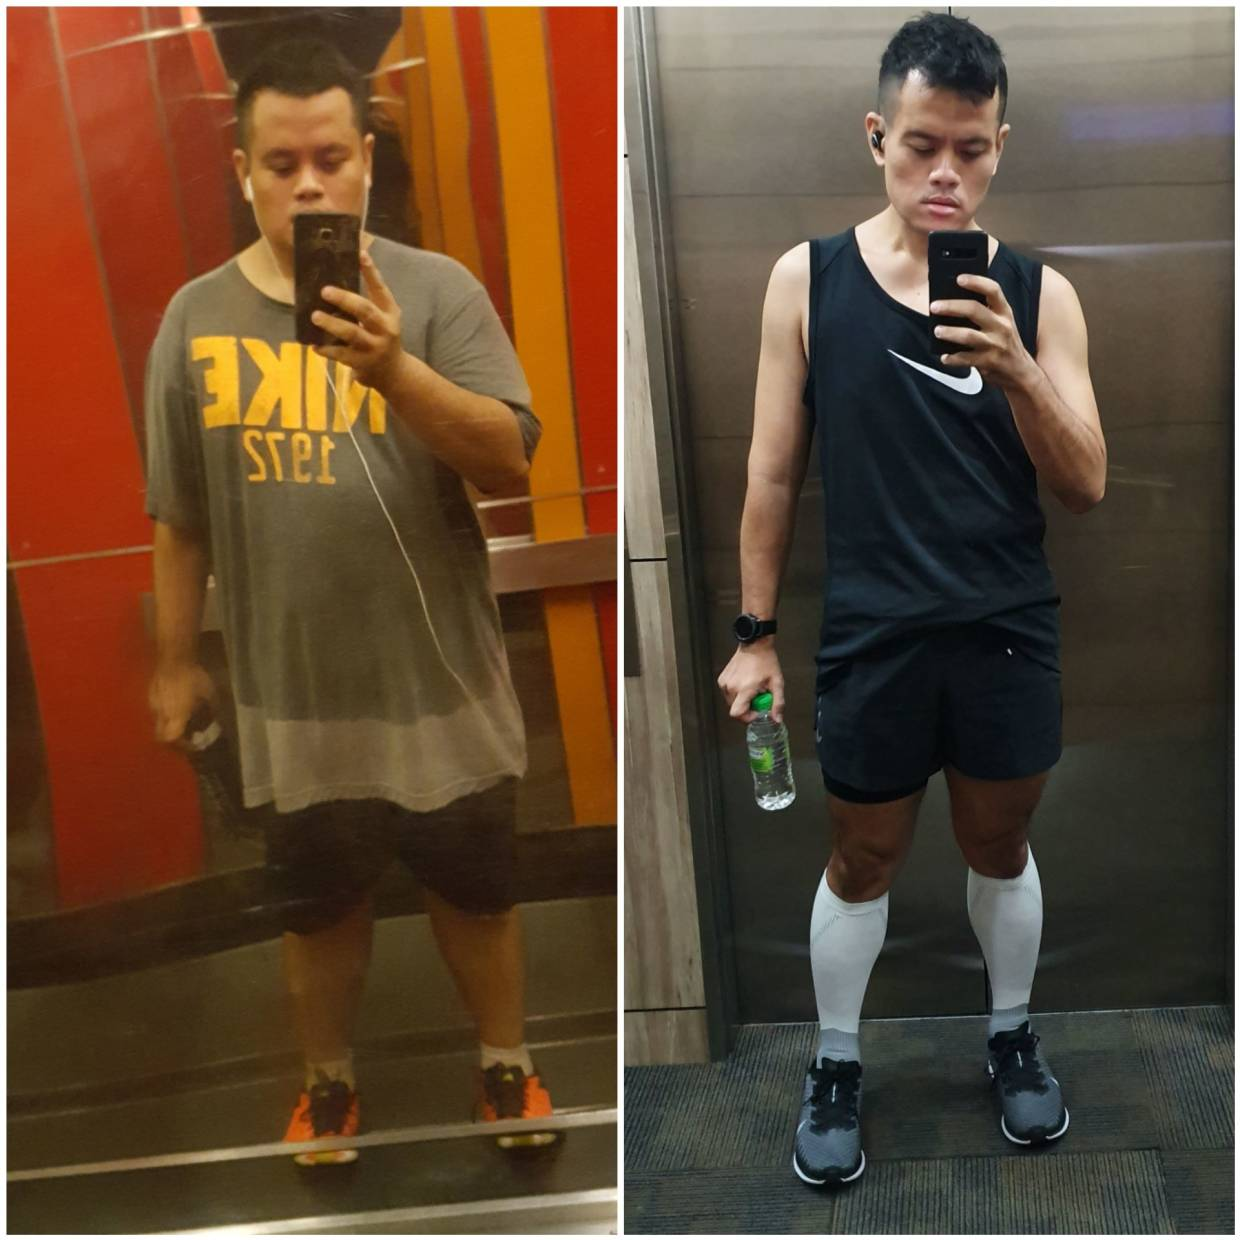 After he was diagnosed with diabetes, Amri decided to change his lifestyle. He started walking and then running and now, he works out almost daily. He has lost 50kg as is the fittest he has ever been in his life.